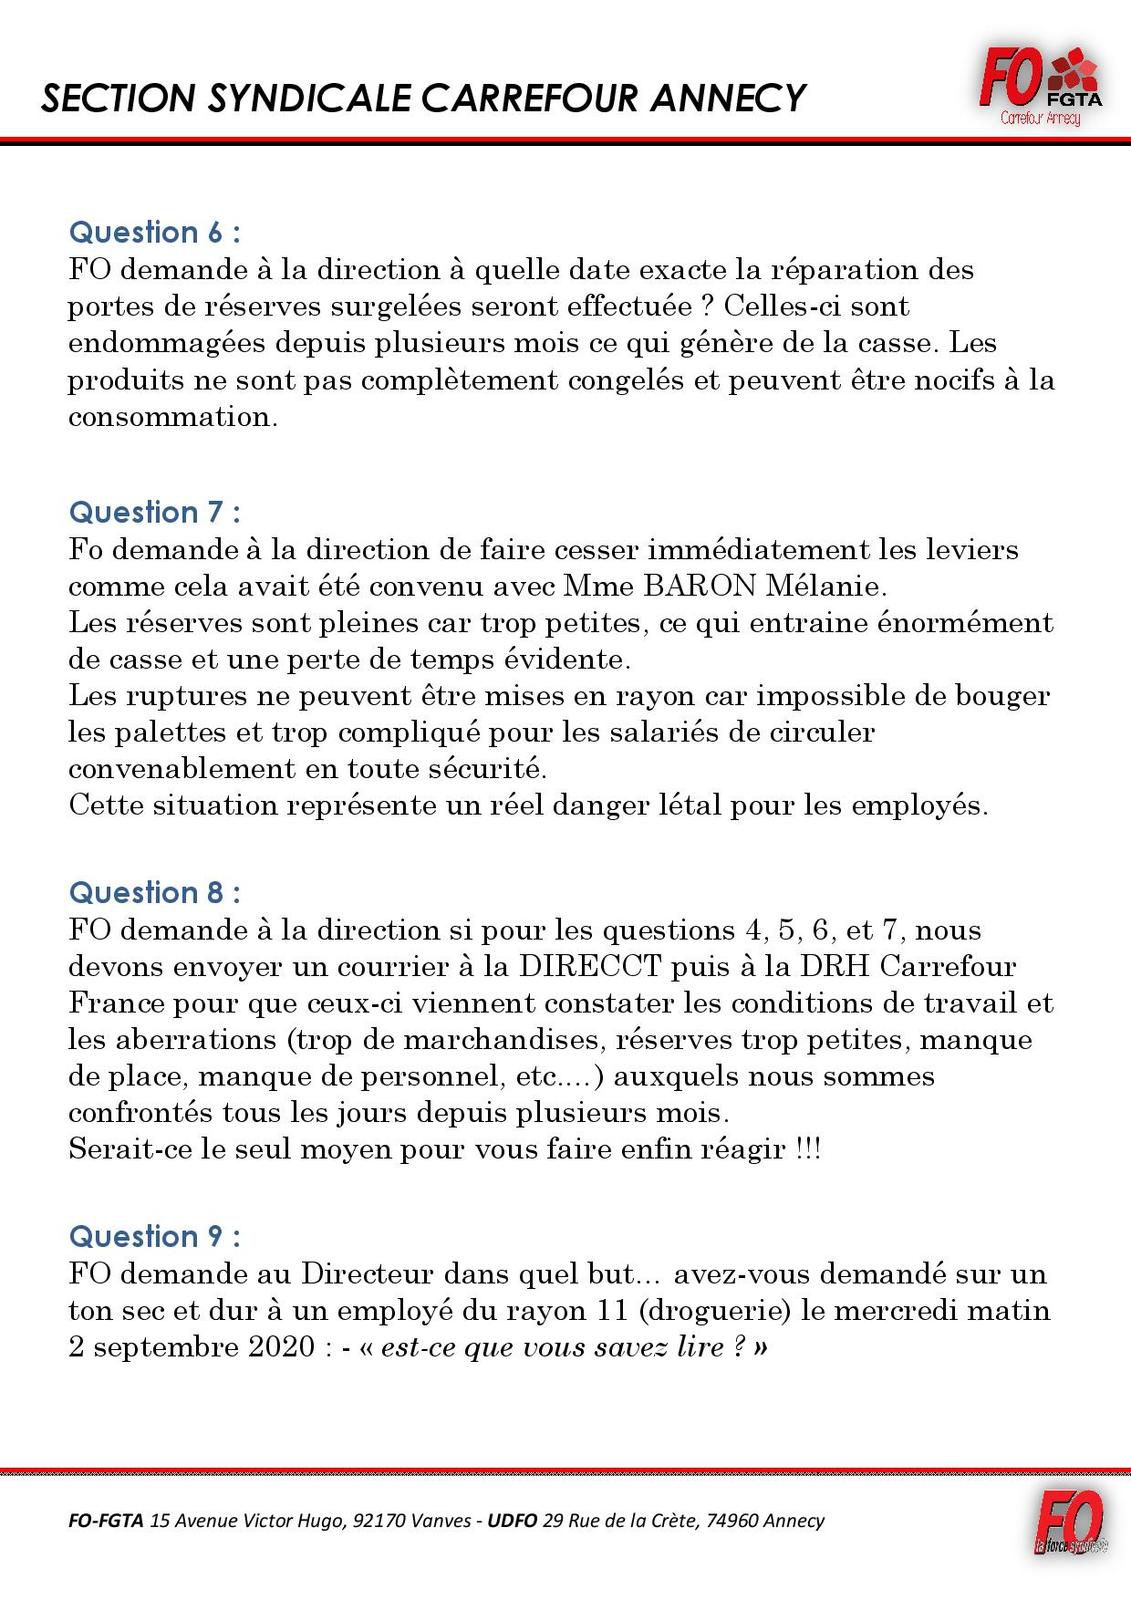 QUESTIONS DP DU MERCREDI 16 SEPTEMBRE 2020